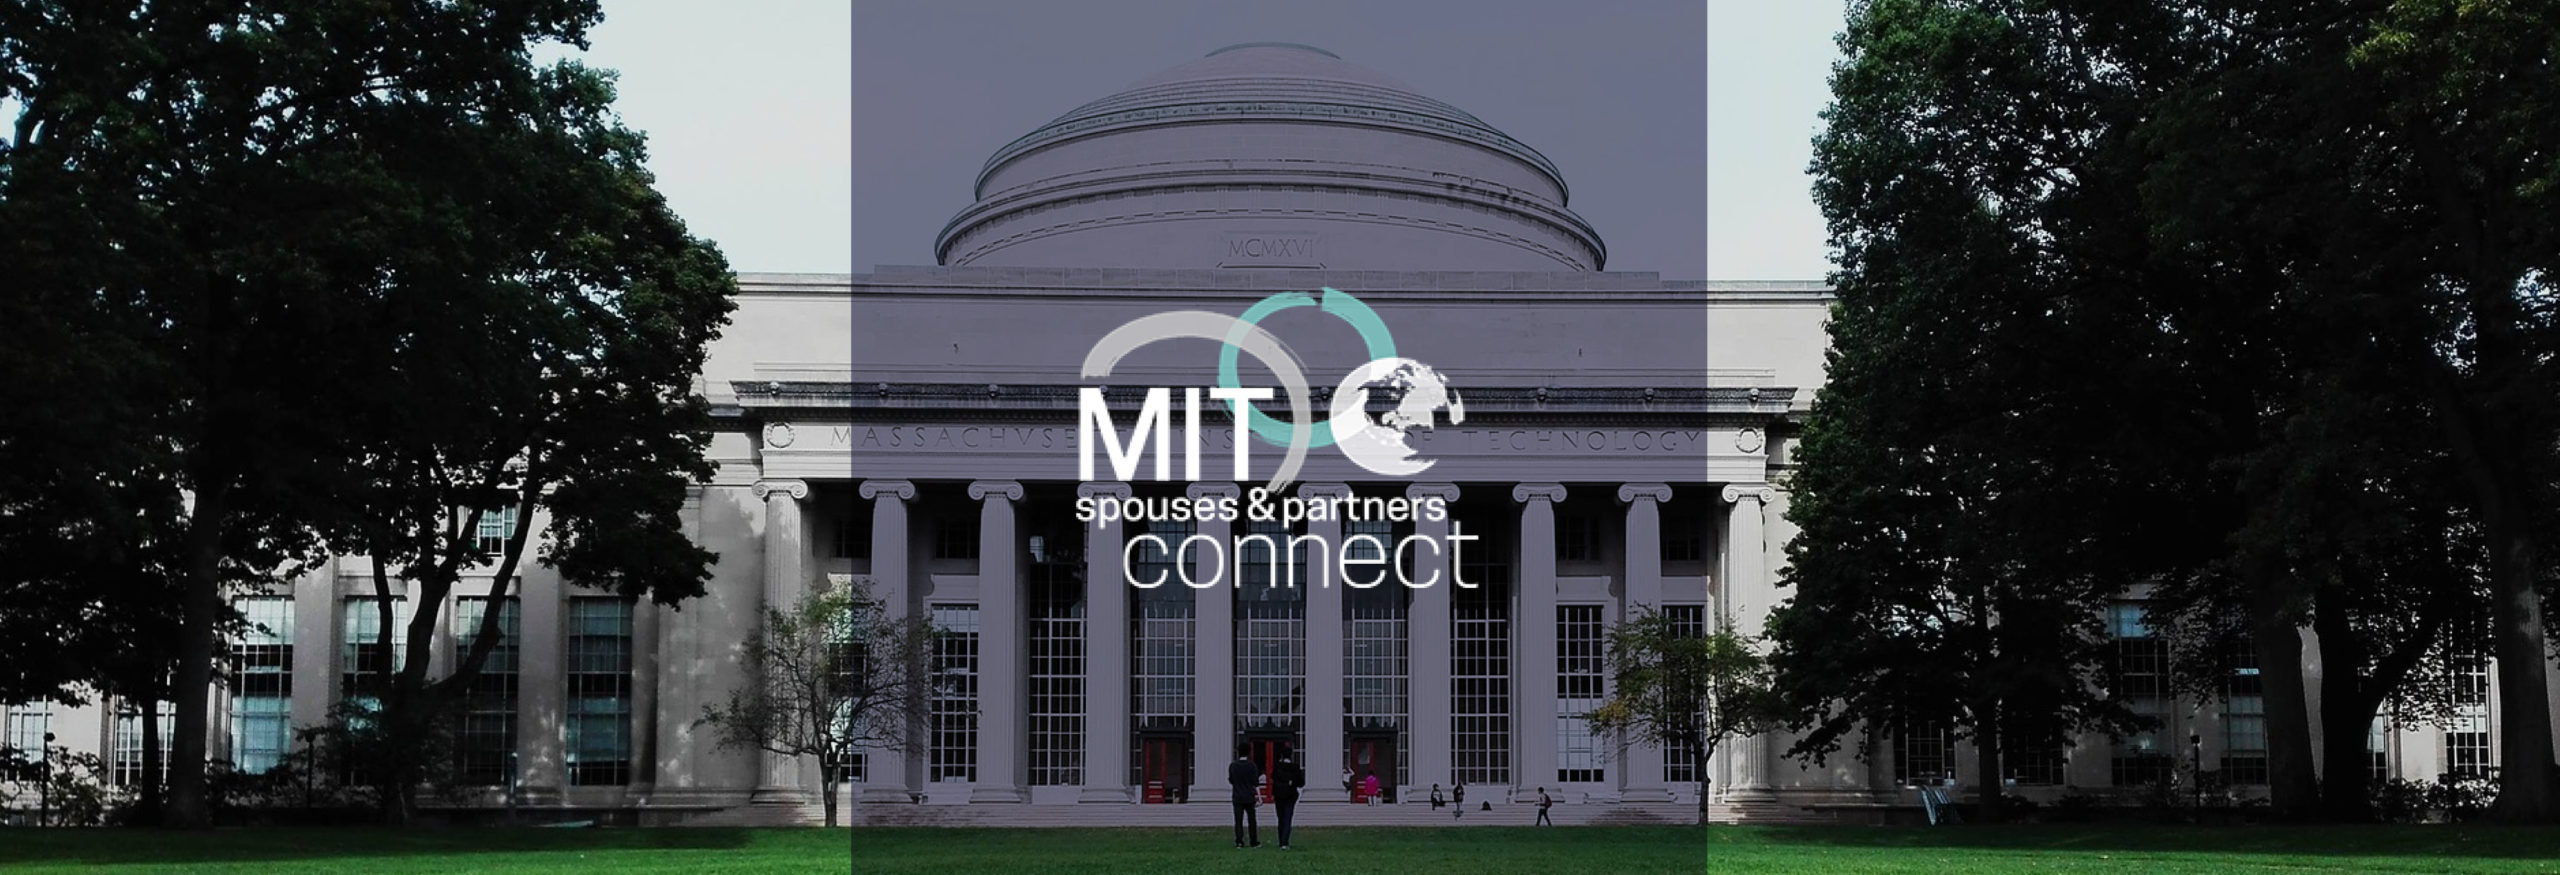 Sngular connects with the MIT community